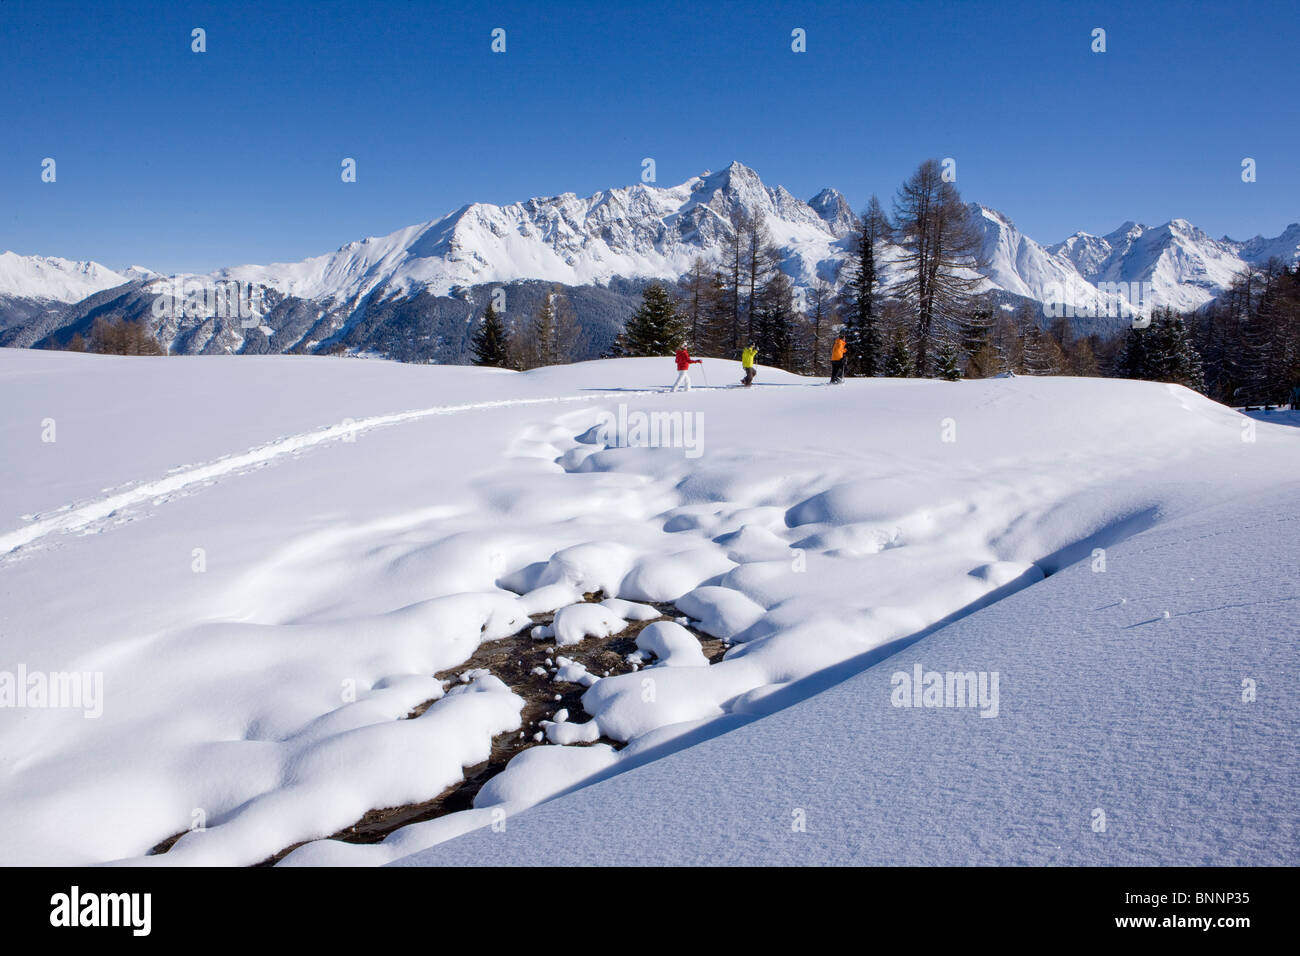 Savognin GR snow shoes snowy shoe running snow group winter scenery persons tourism winter winter sports canton - Stock Image